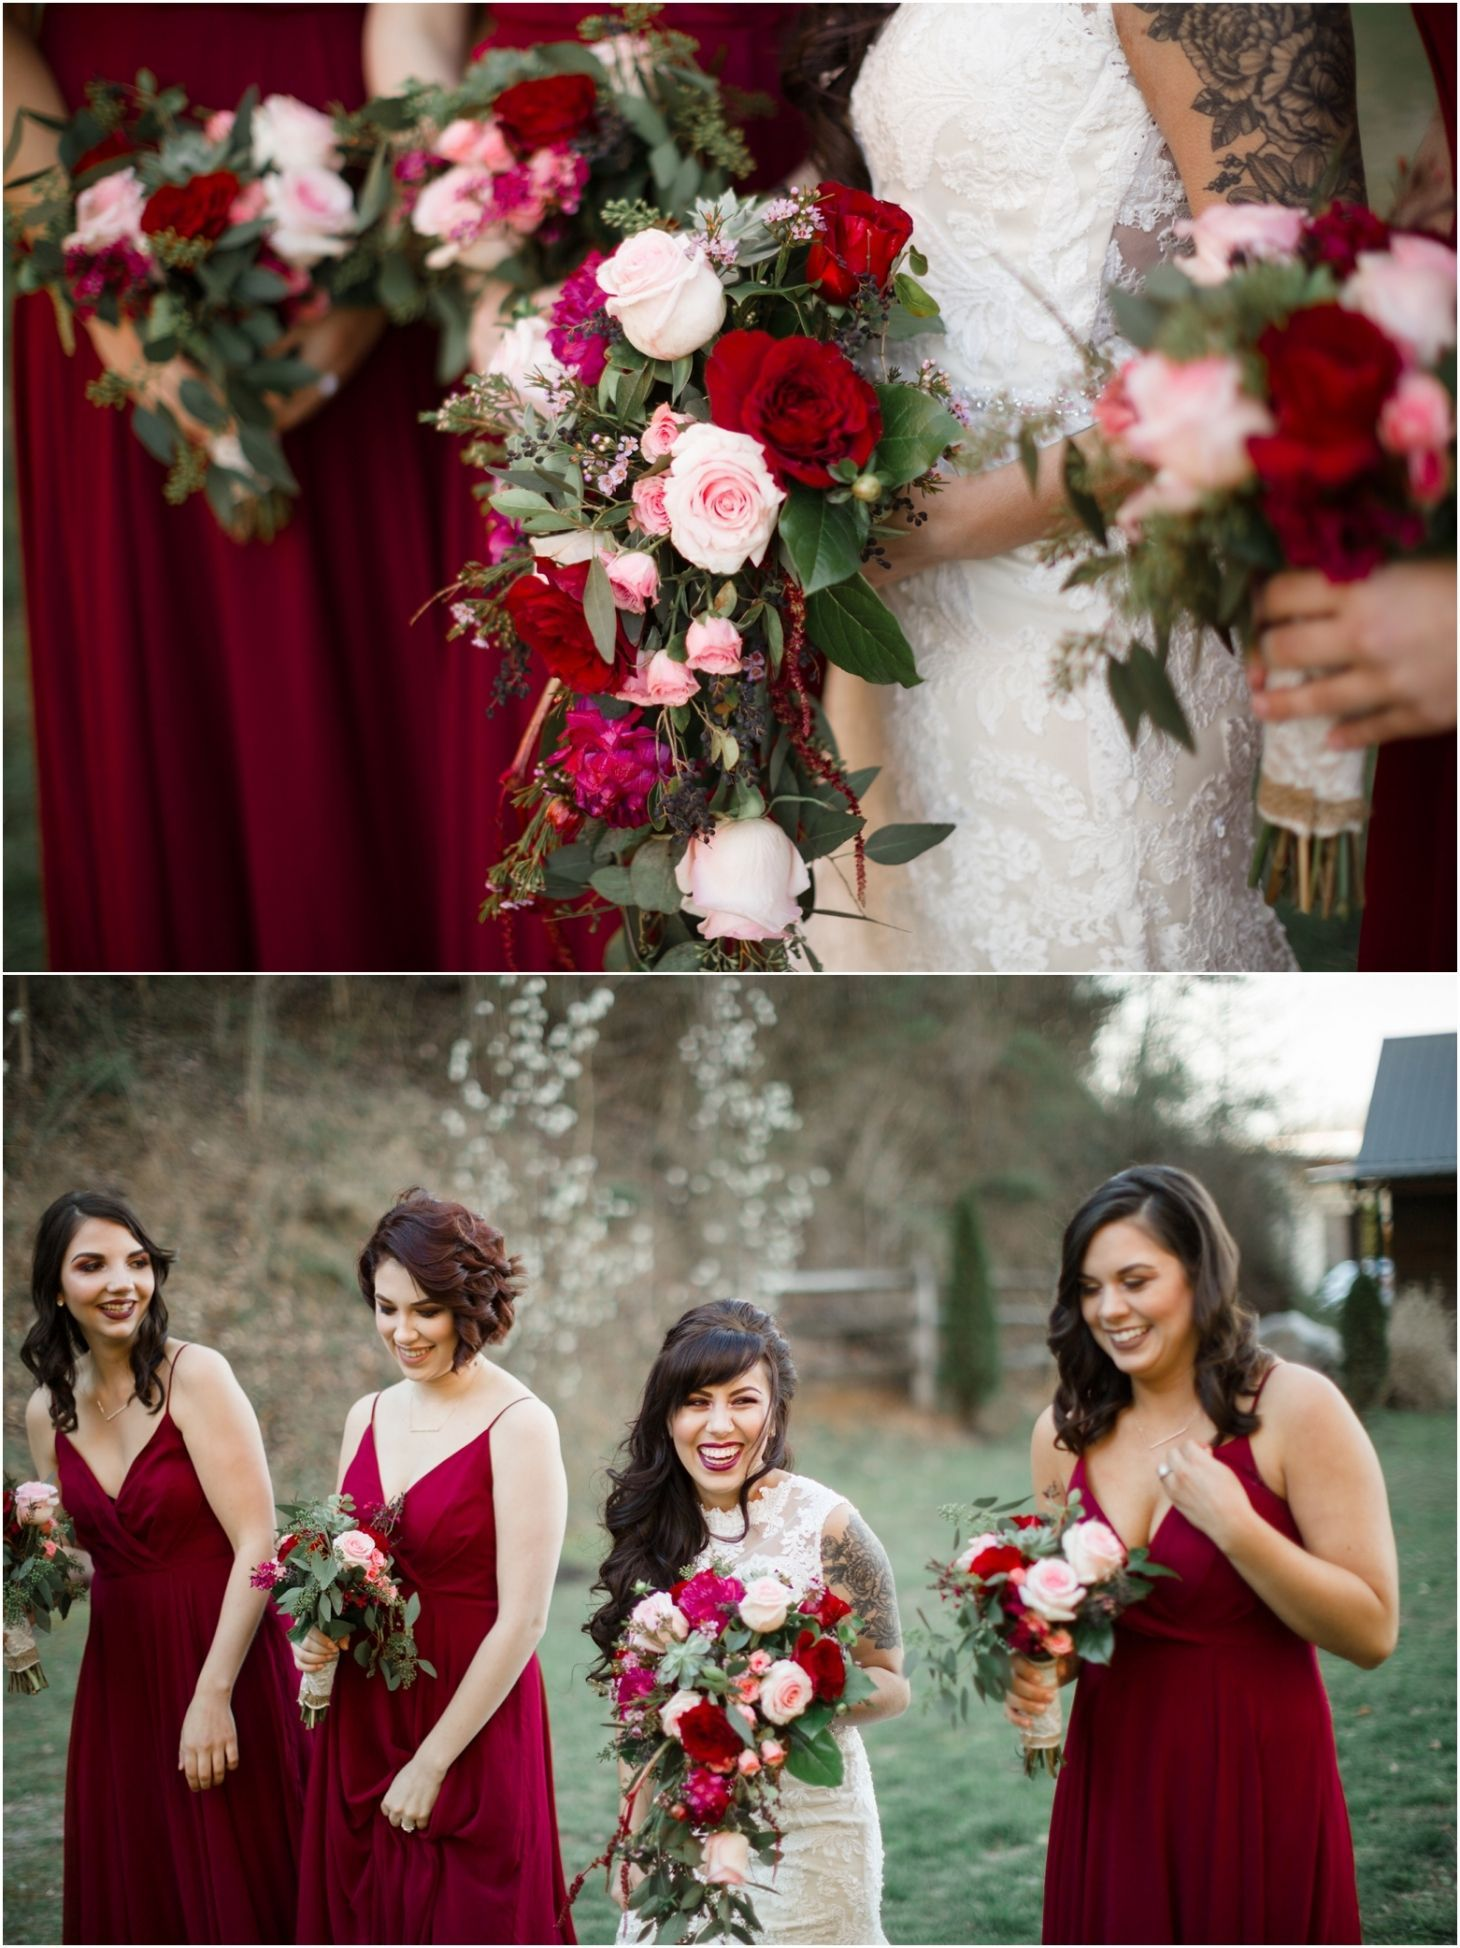 Love these rich cranberry bridesmaids dresses and red and